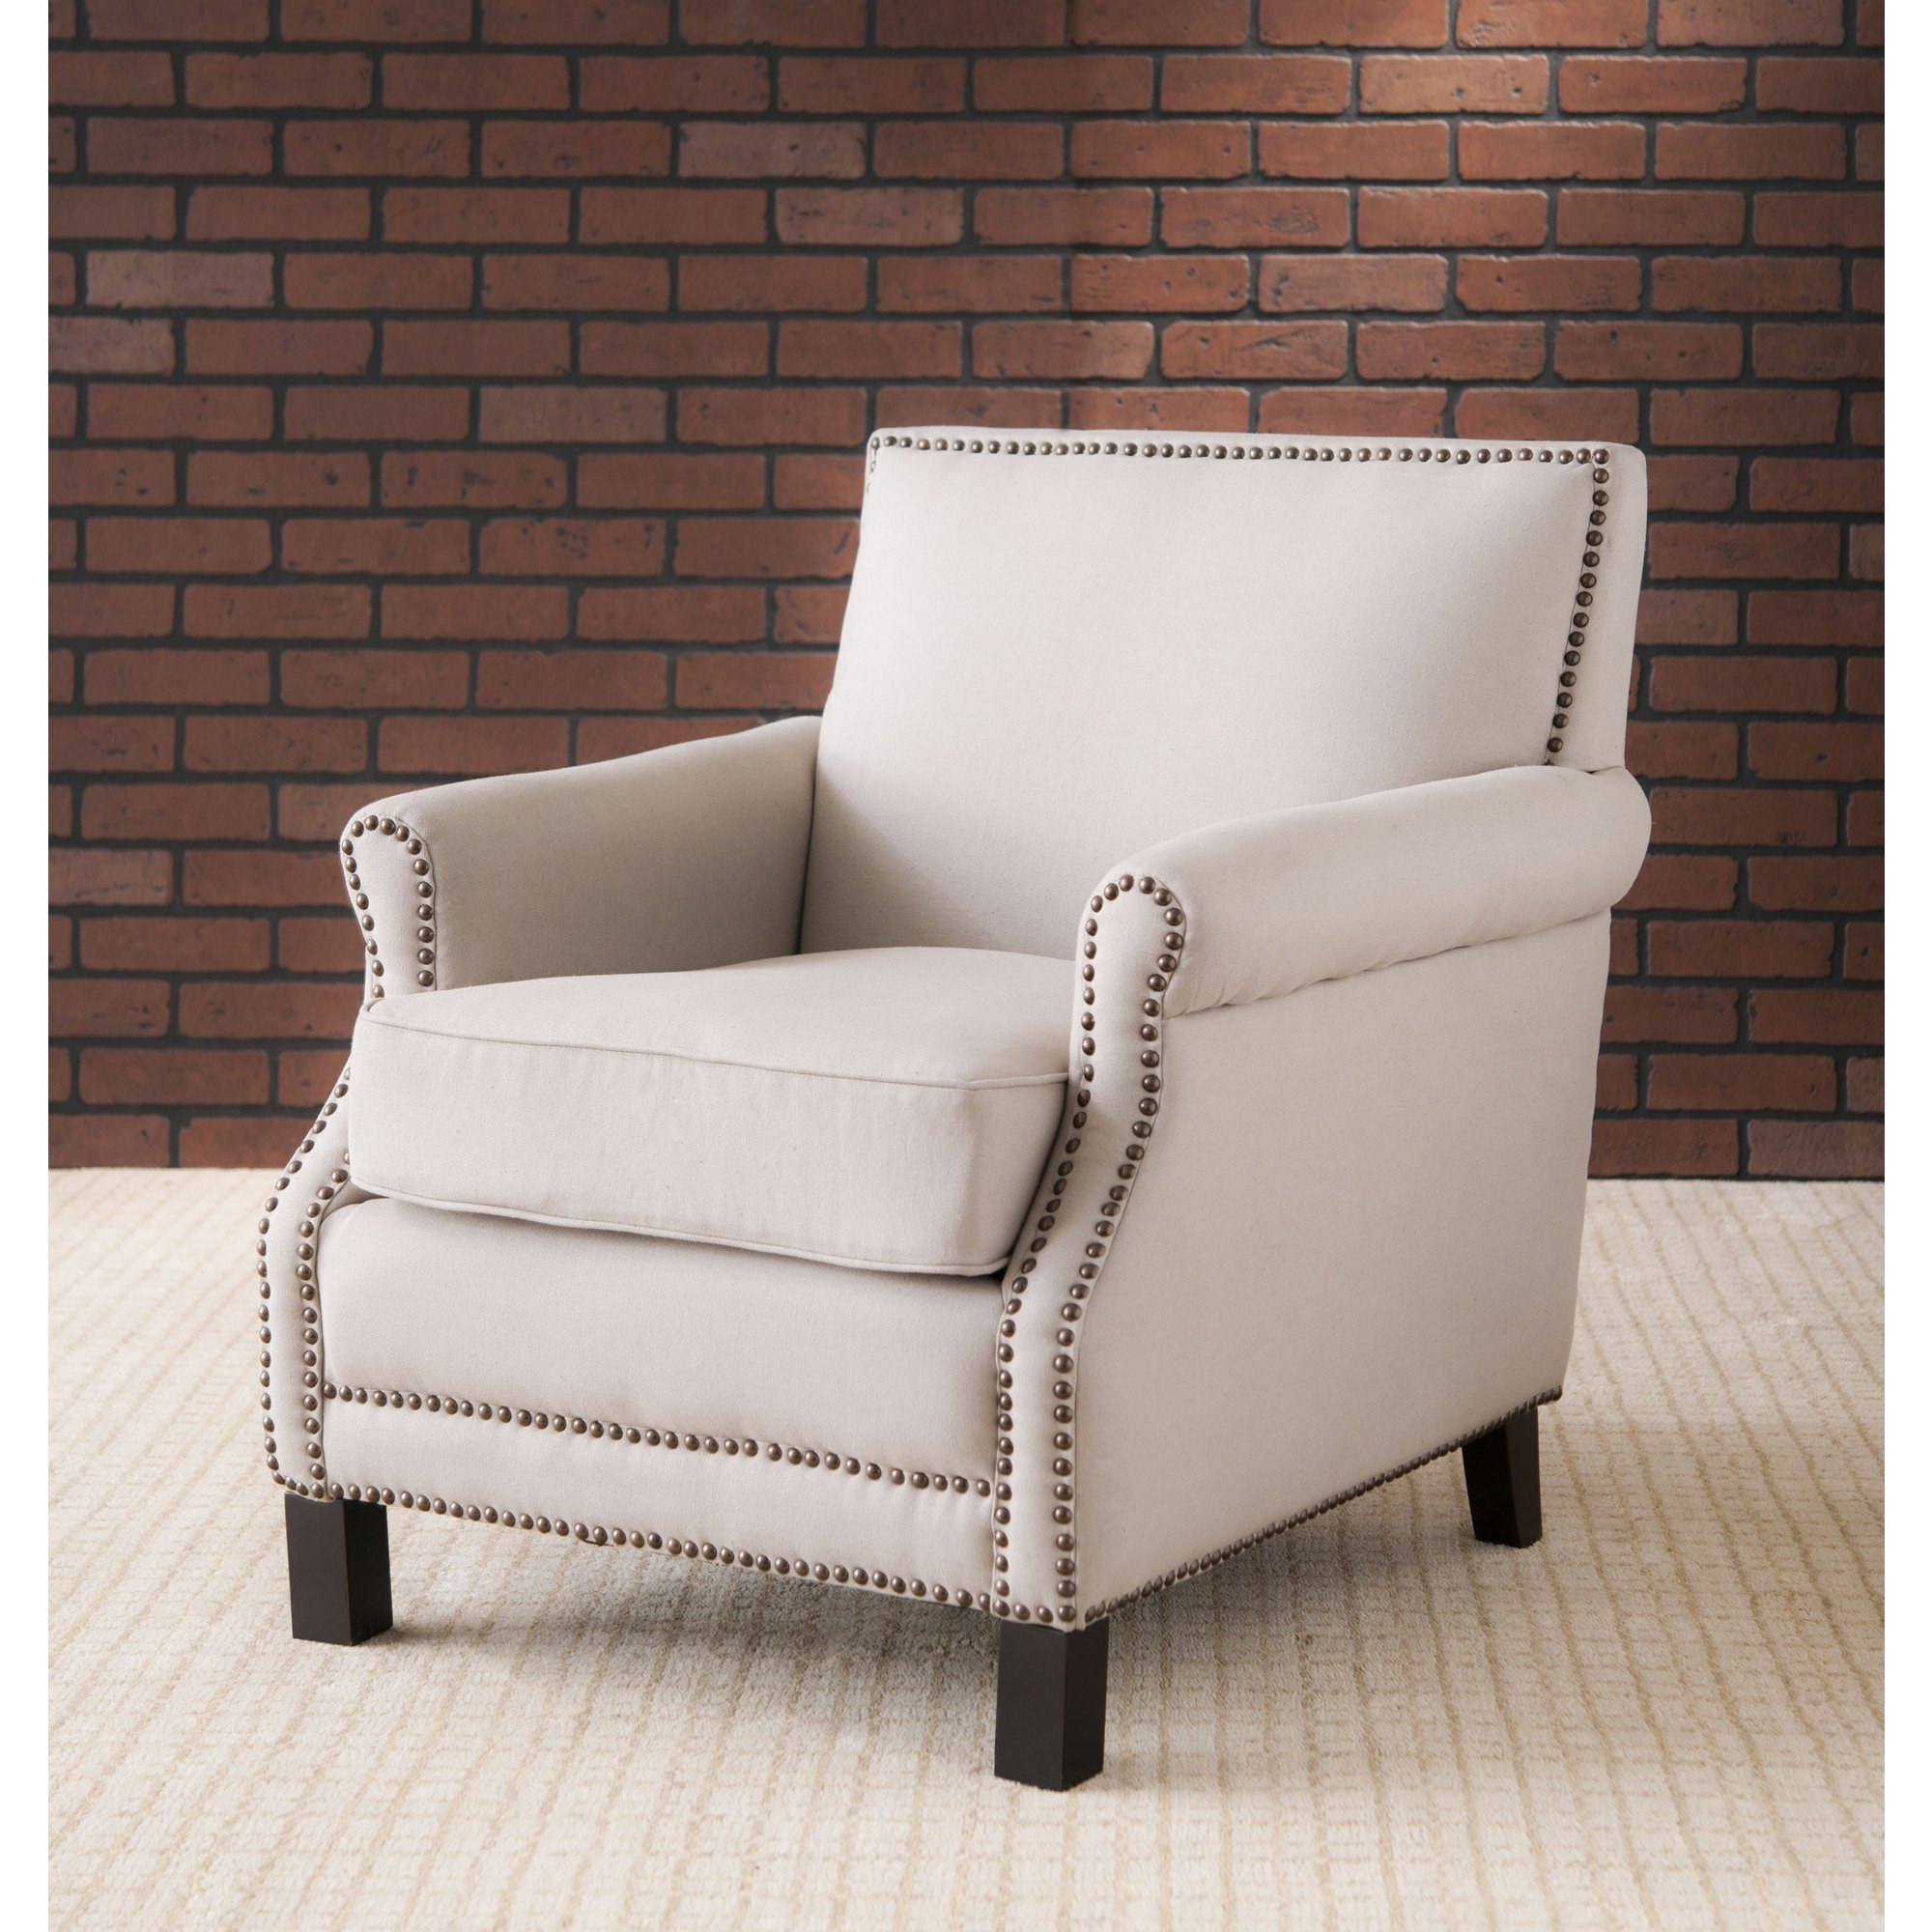 Shop Safavieh Mansfield Beige Club Chair – Free Shipping Today With Regard To Famous Mansfield Beige Linen Sofa Chairs (Gallery 2 of 20)